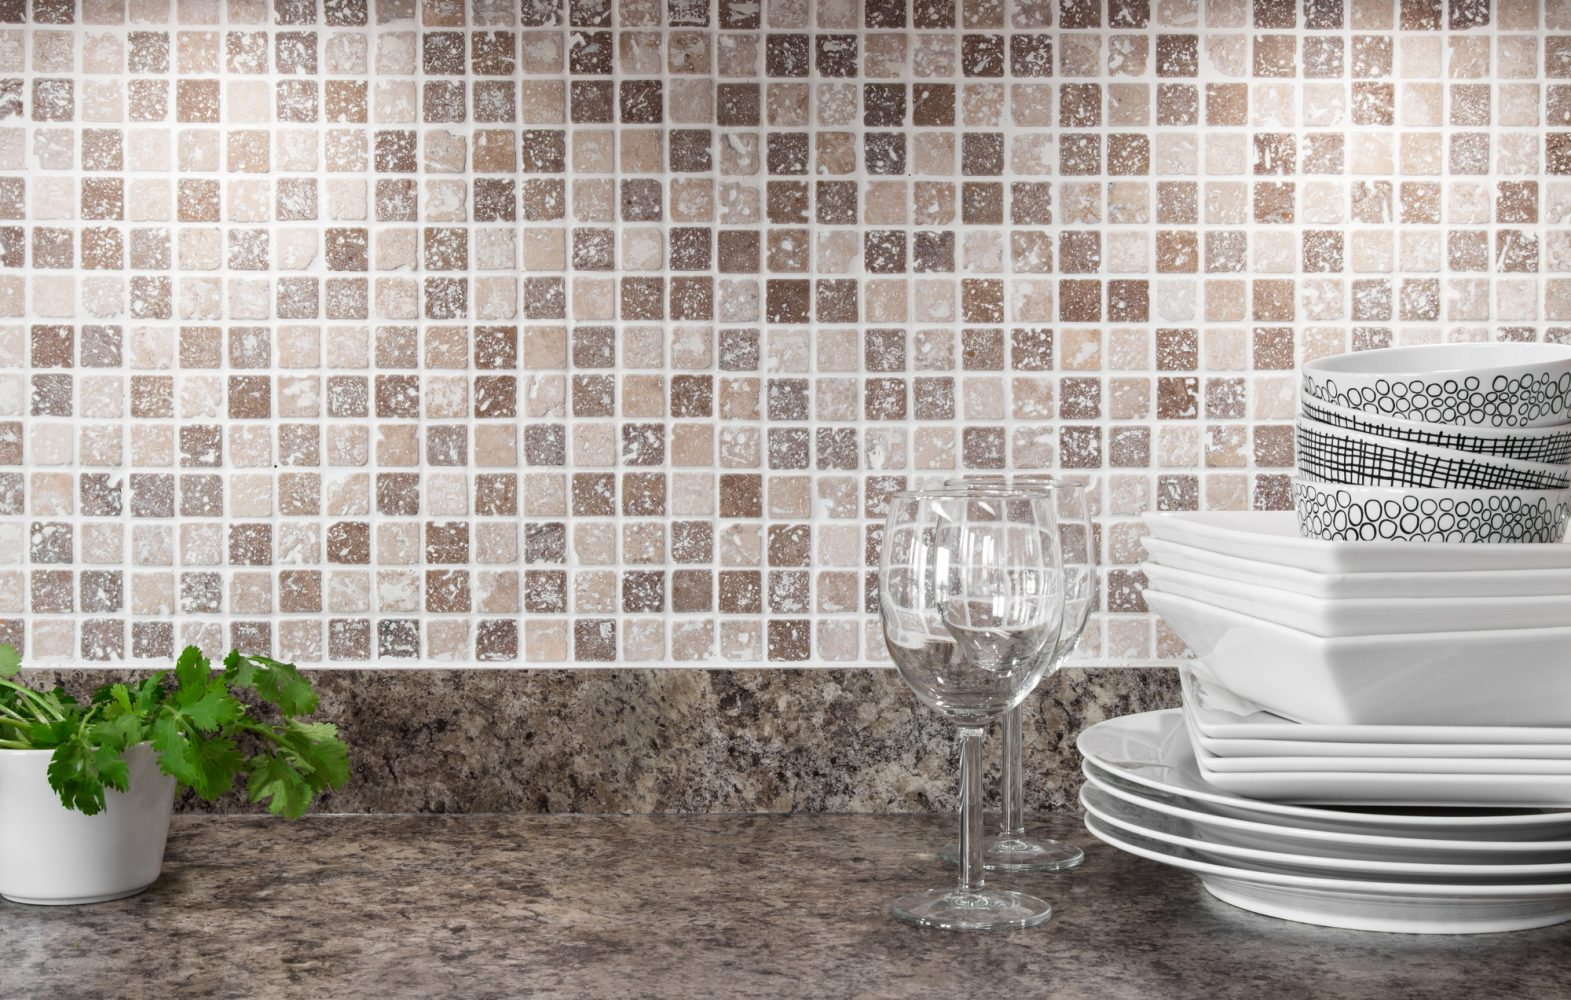 How to install a mosaic tile backsplash in the kitchen or bathroom